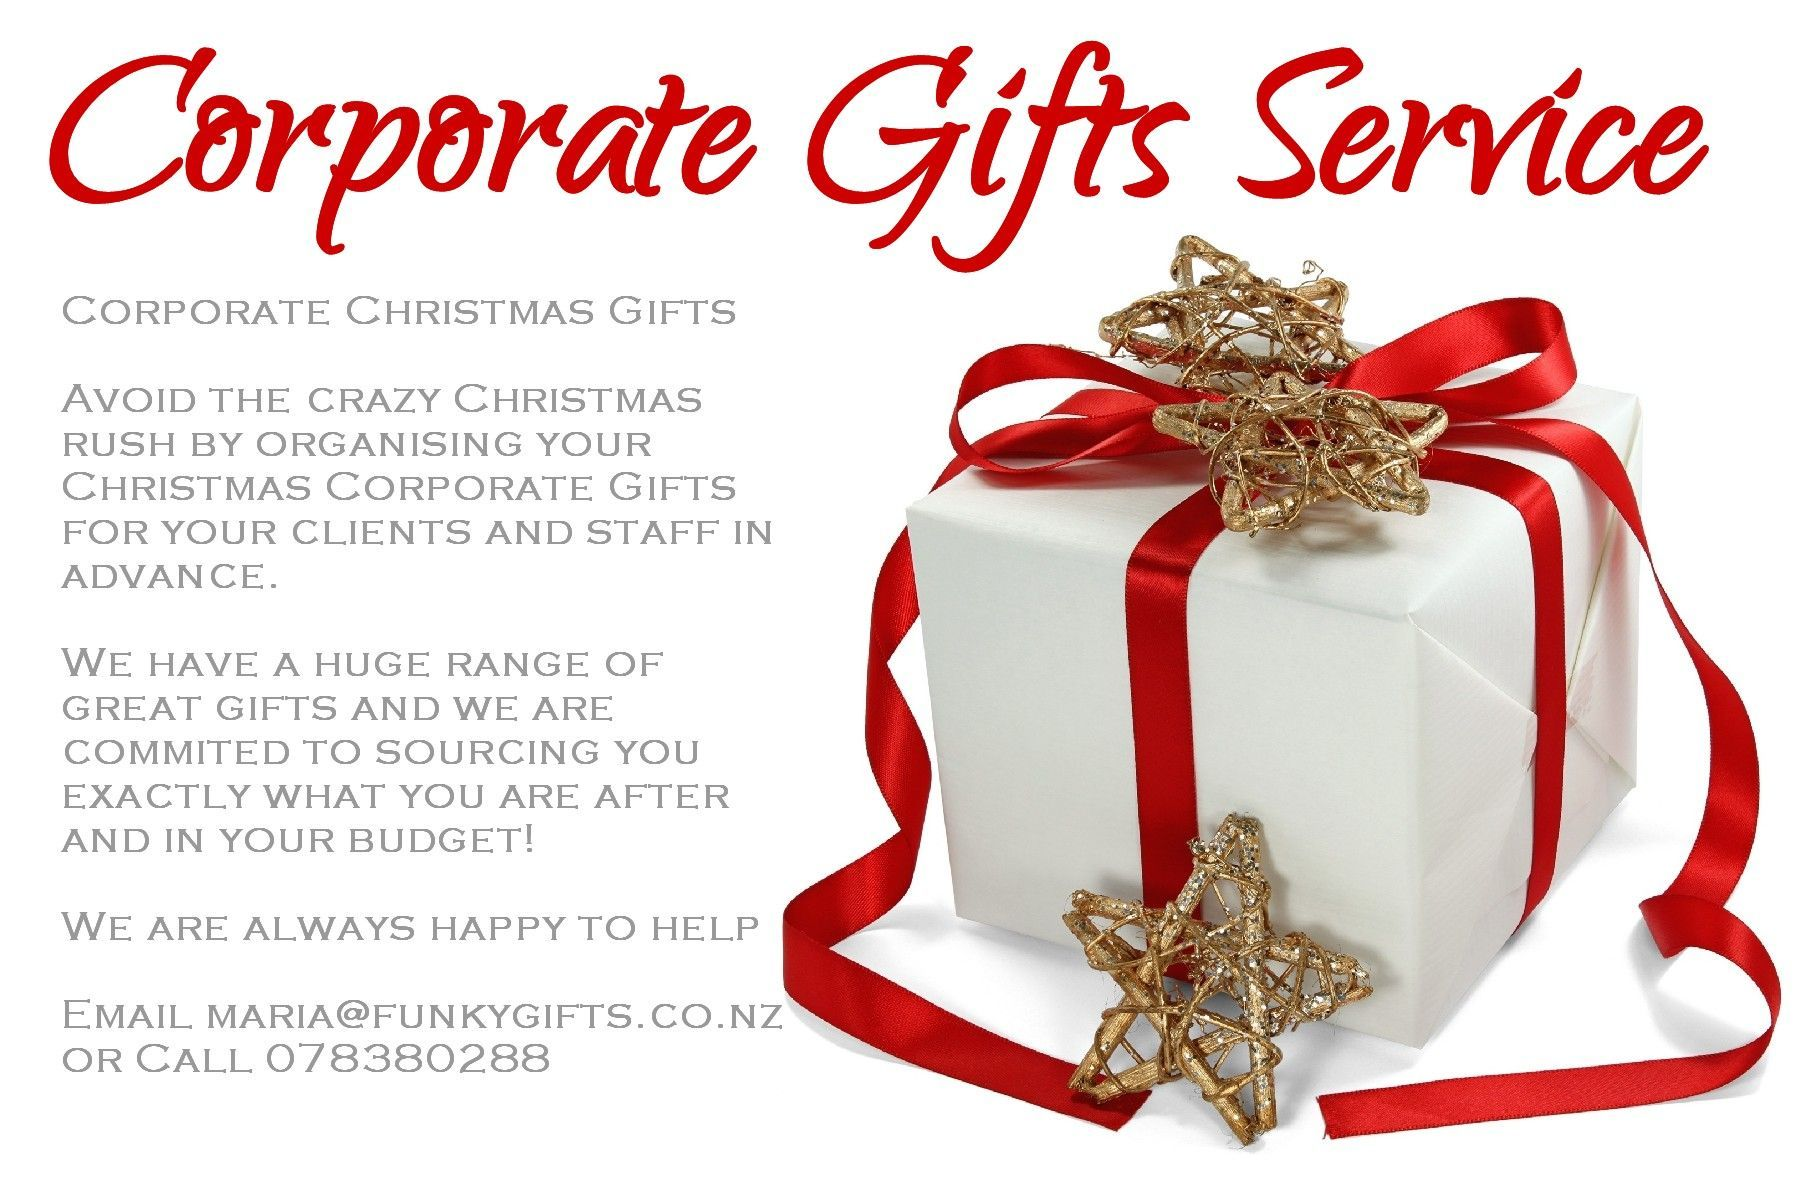 High End Client Christmas Gifts 2020 Best Free of Charge This Weeks √ 22+ Corporate Gifts Ideas for